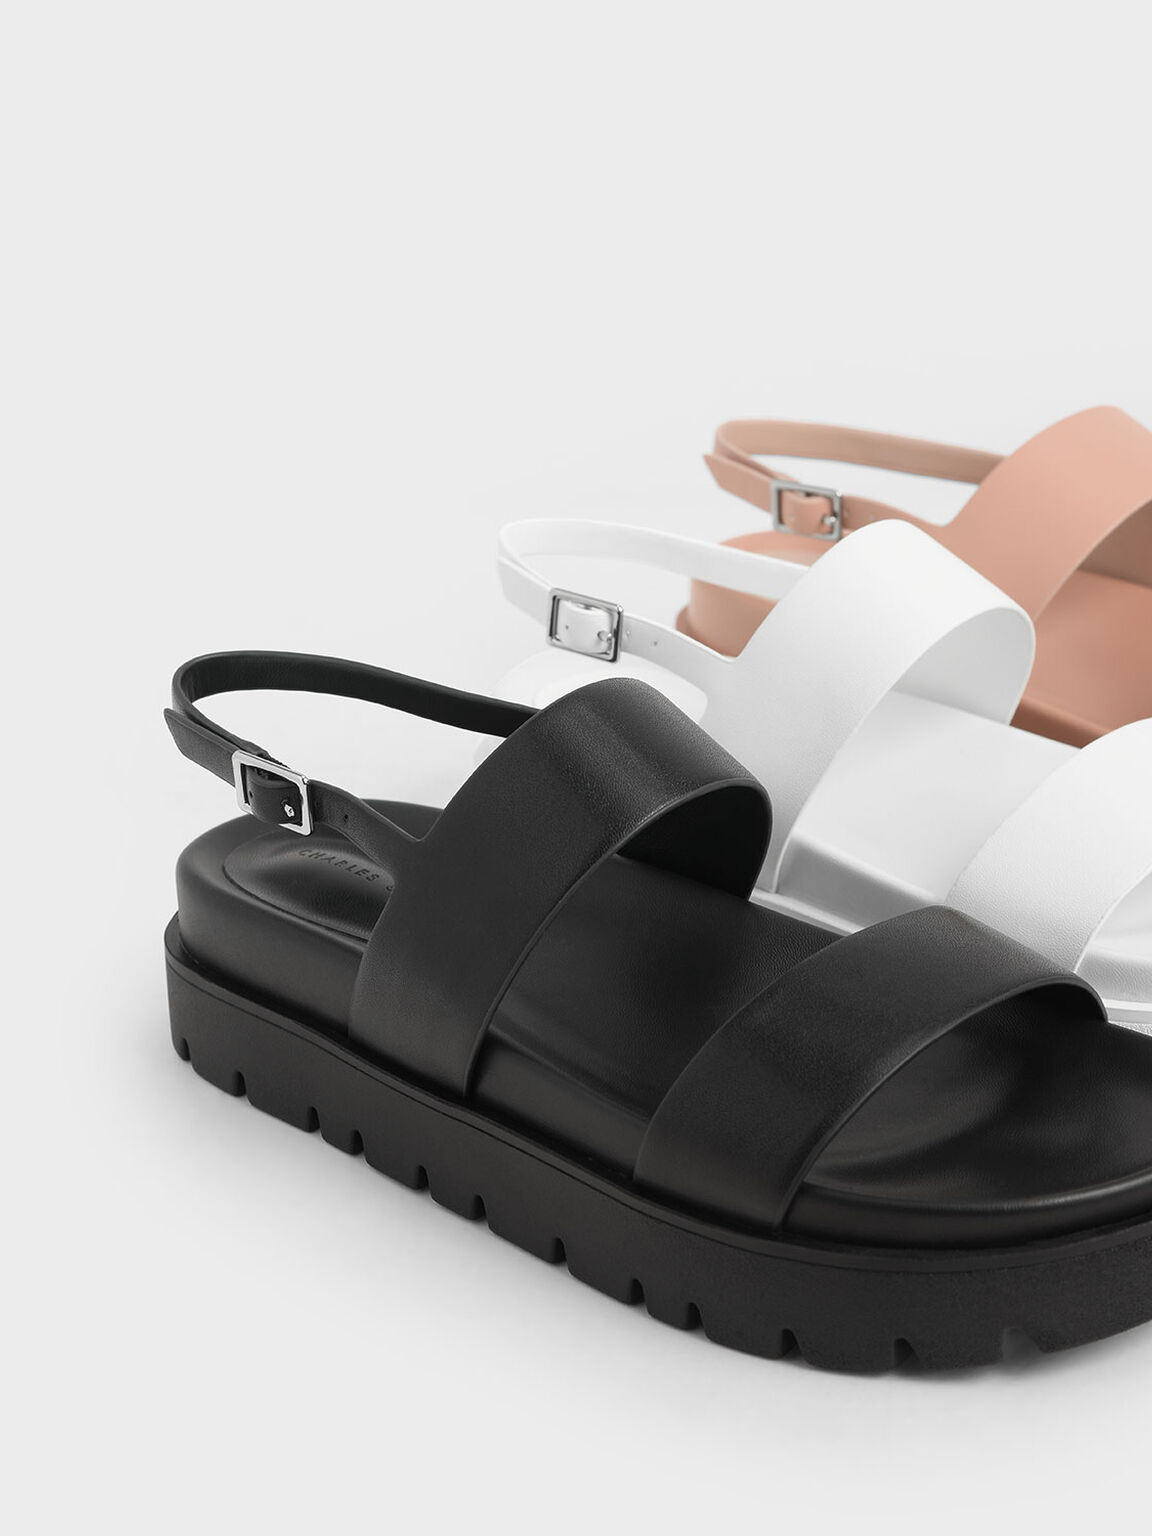 Flatform Sandals, Black, hi-res